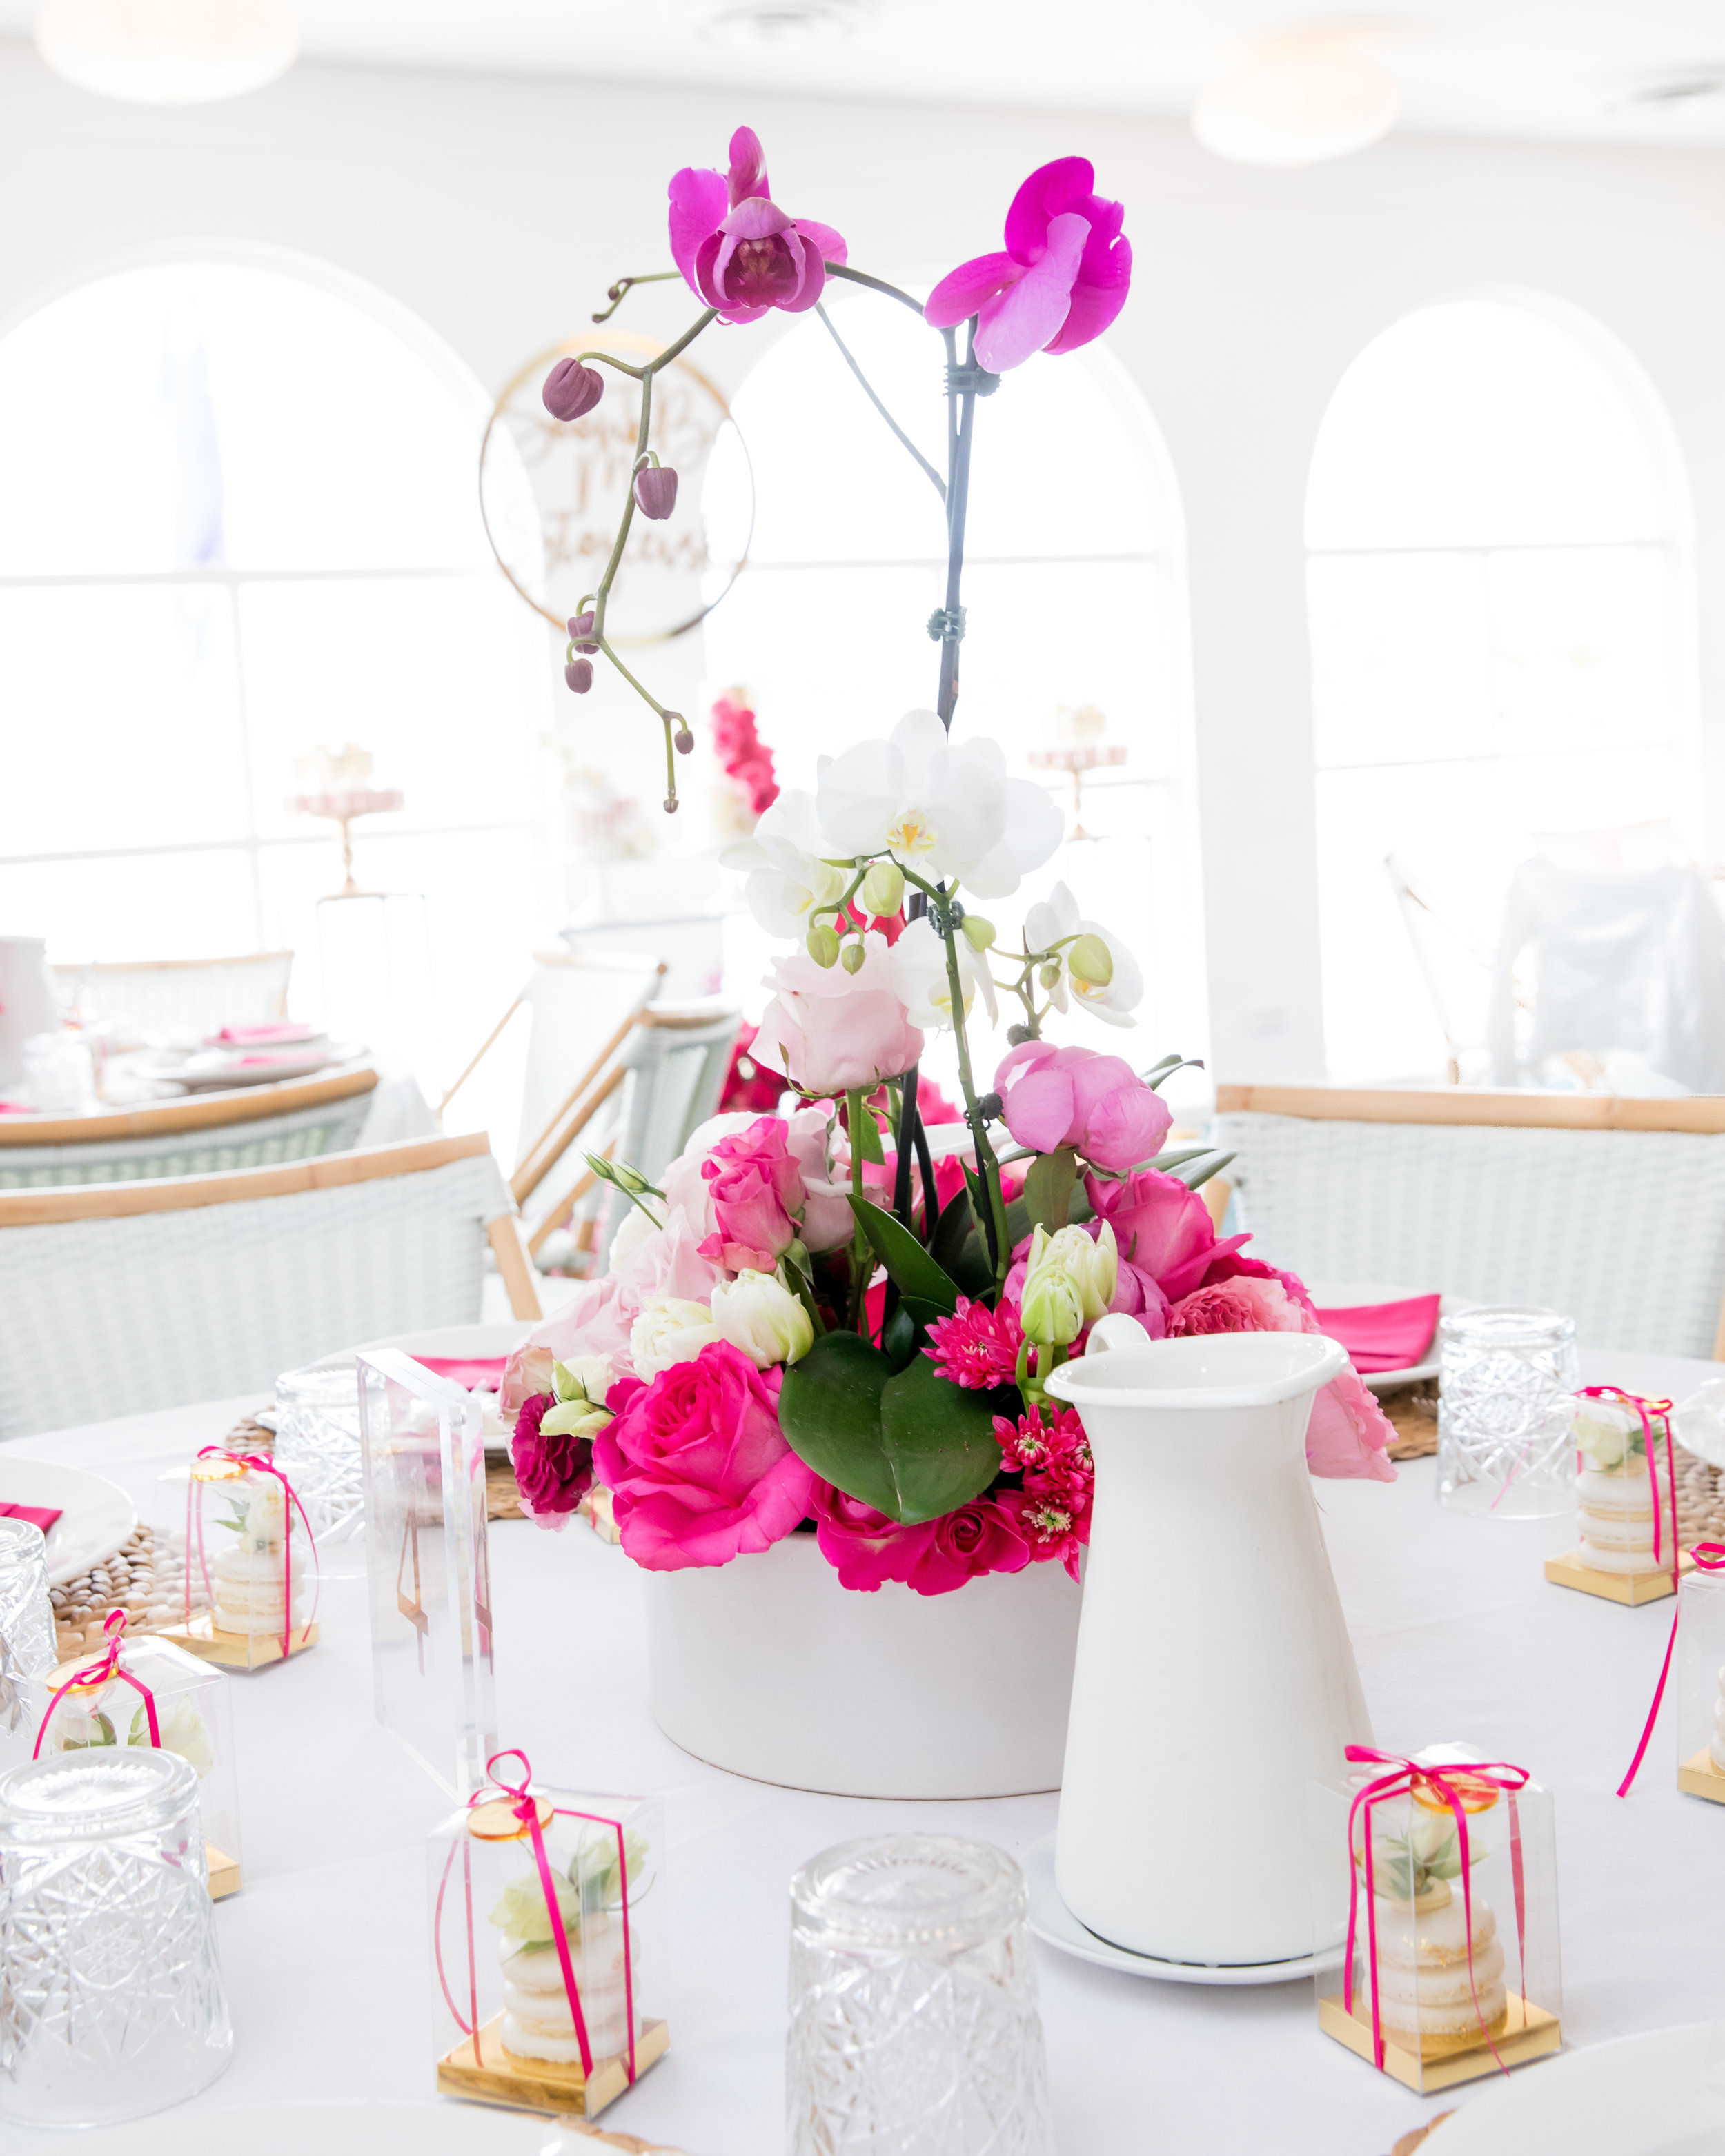 kitchen_tea_styling_white_pink_styling_floral_centrepiece_blue_room_bondi_events_by_nadia.jpg